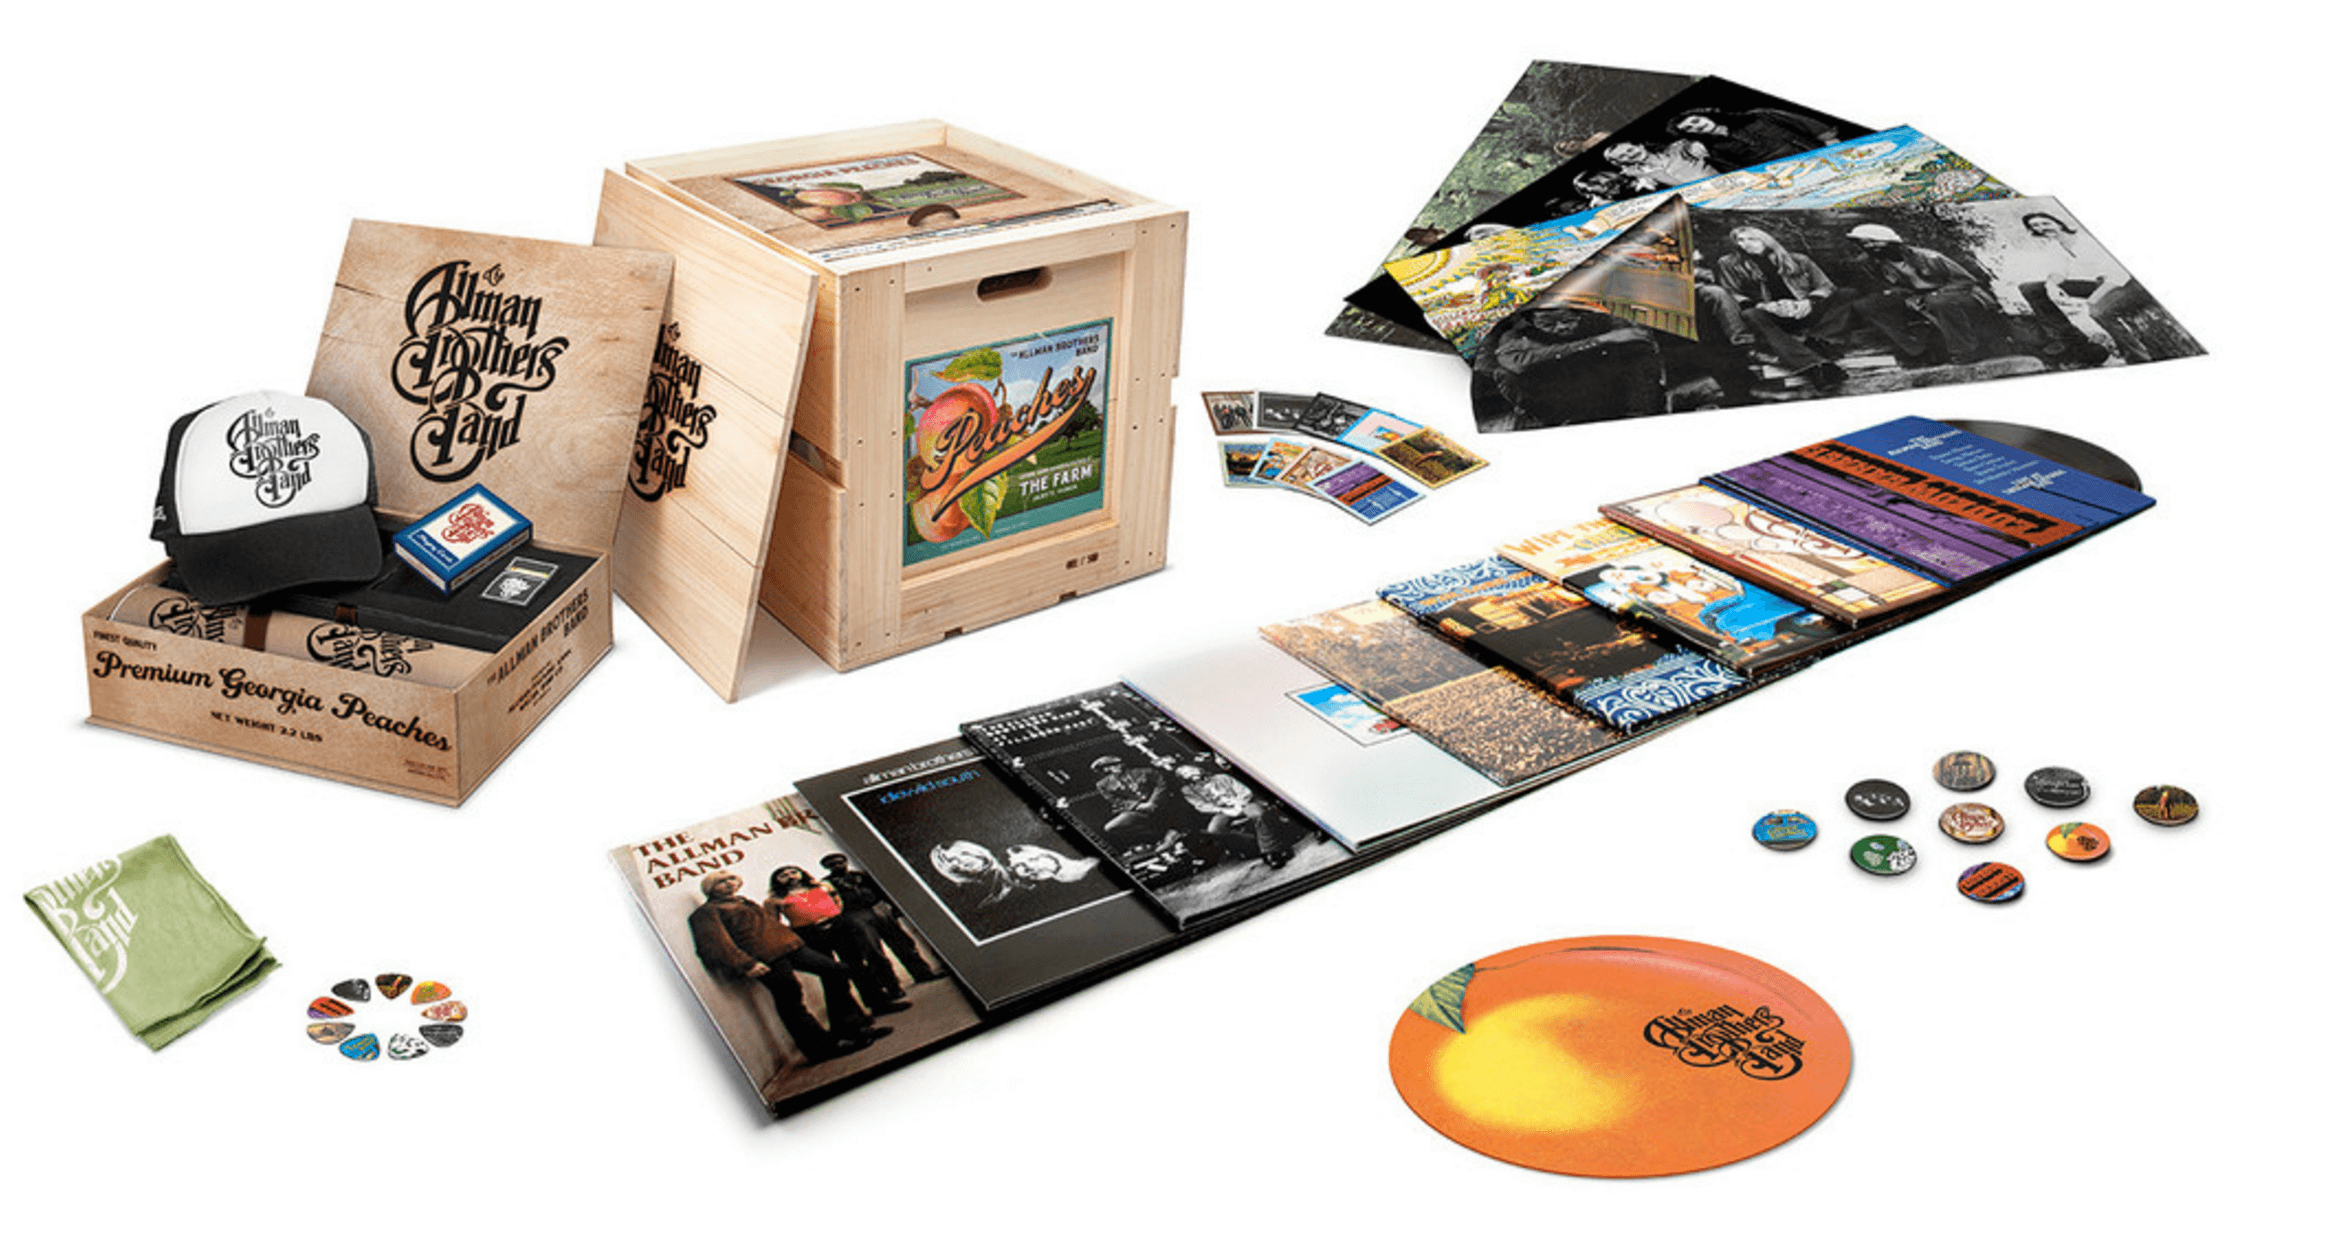 Allman Brothers Releasing 15xlp Set Packaged In Peach